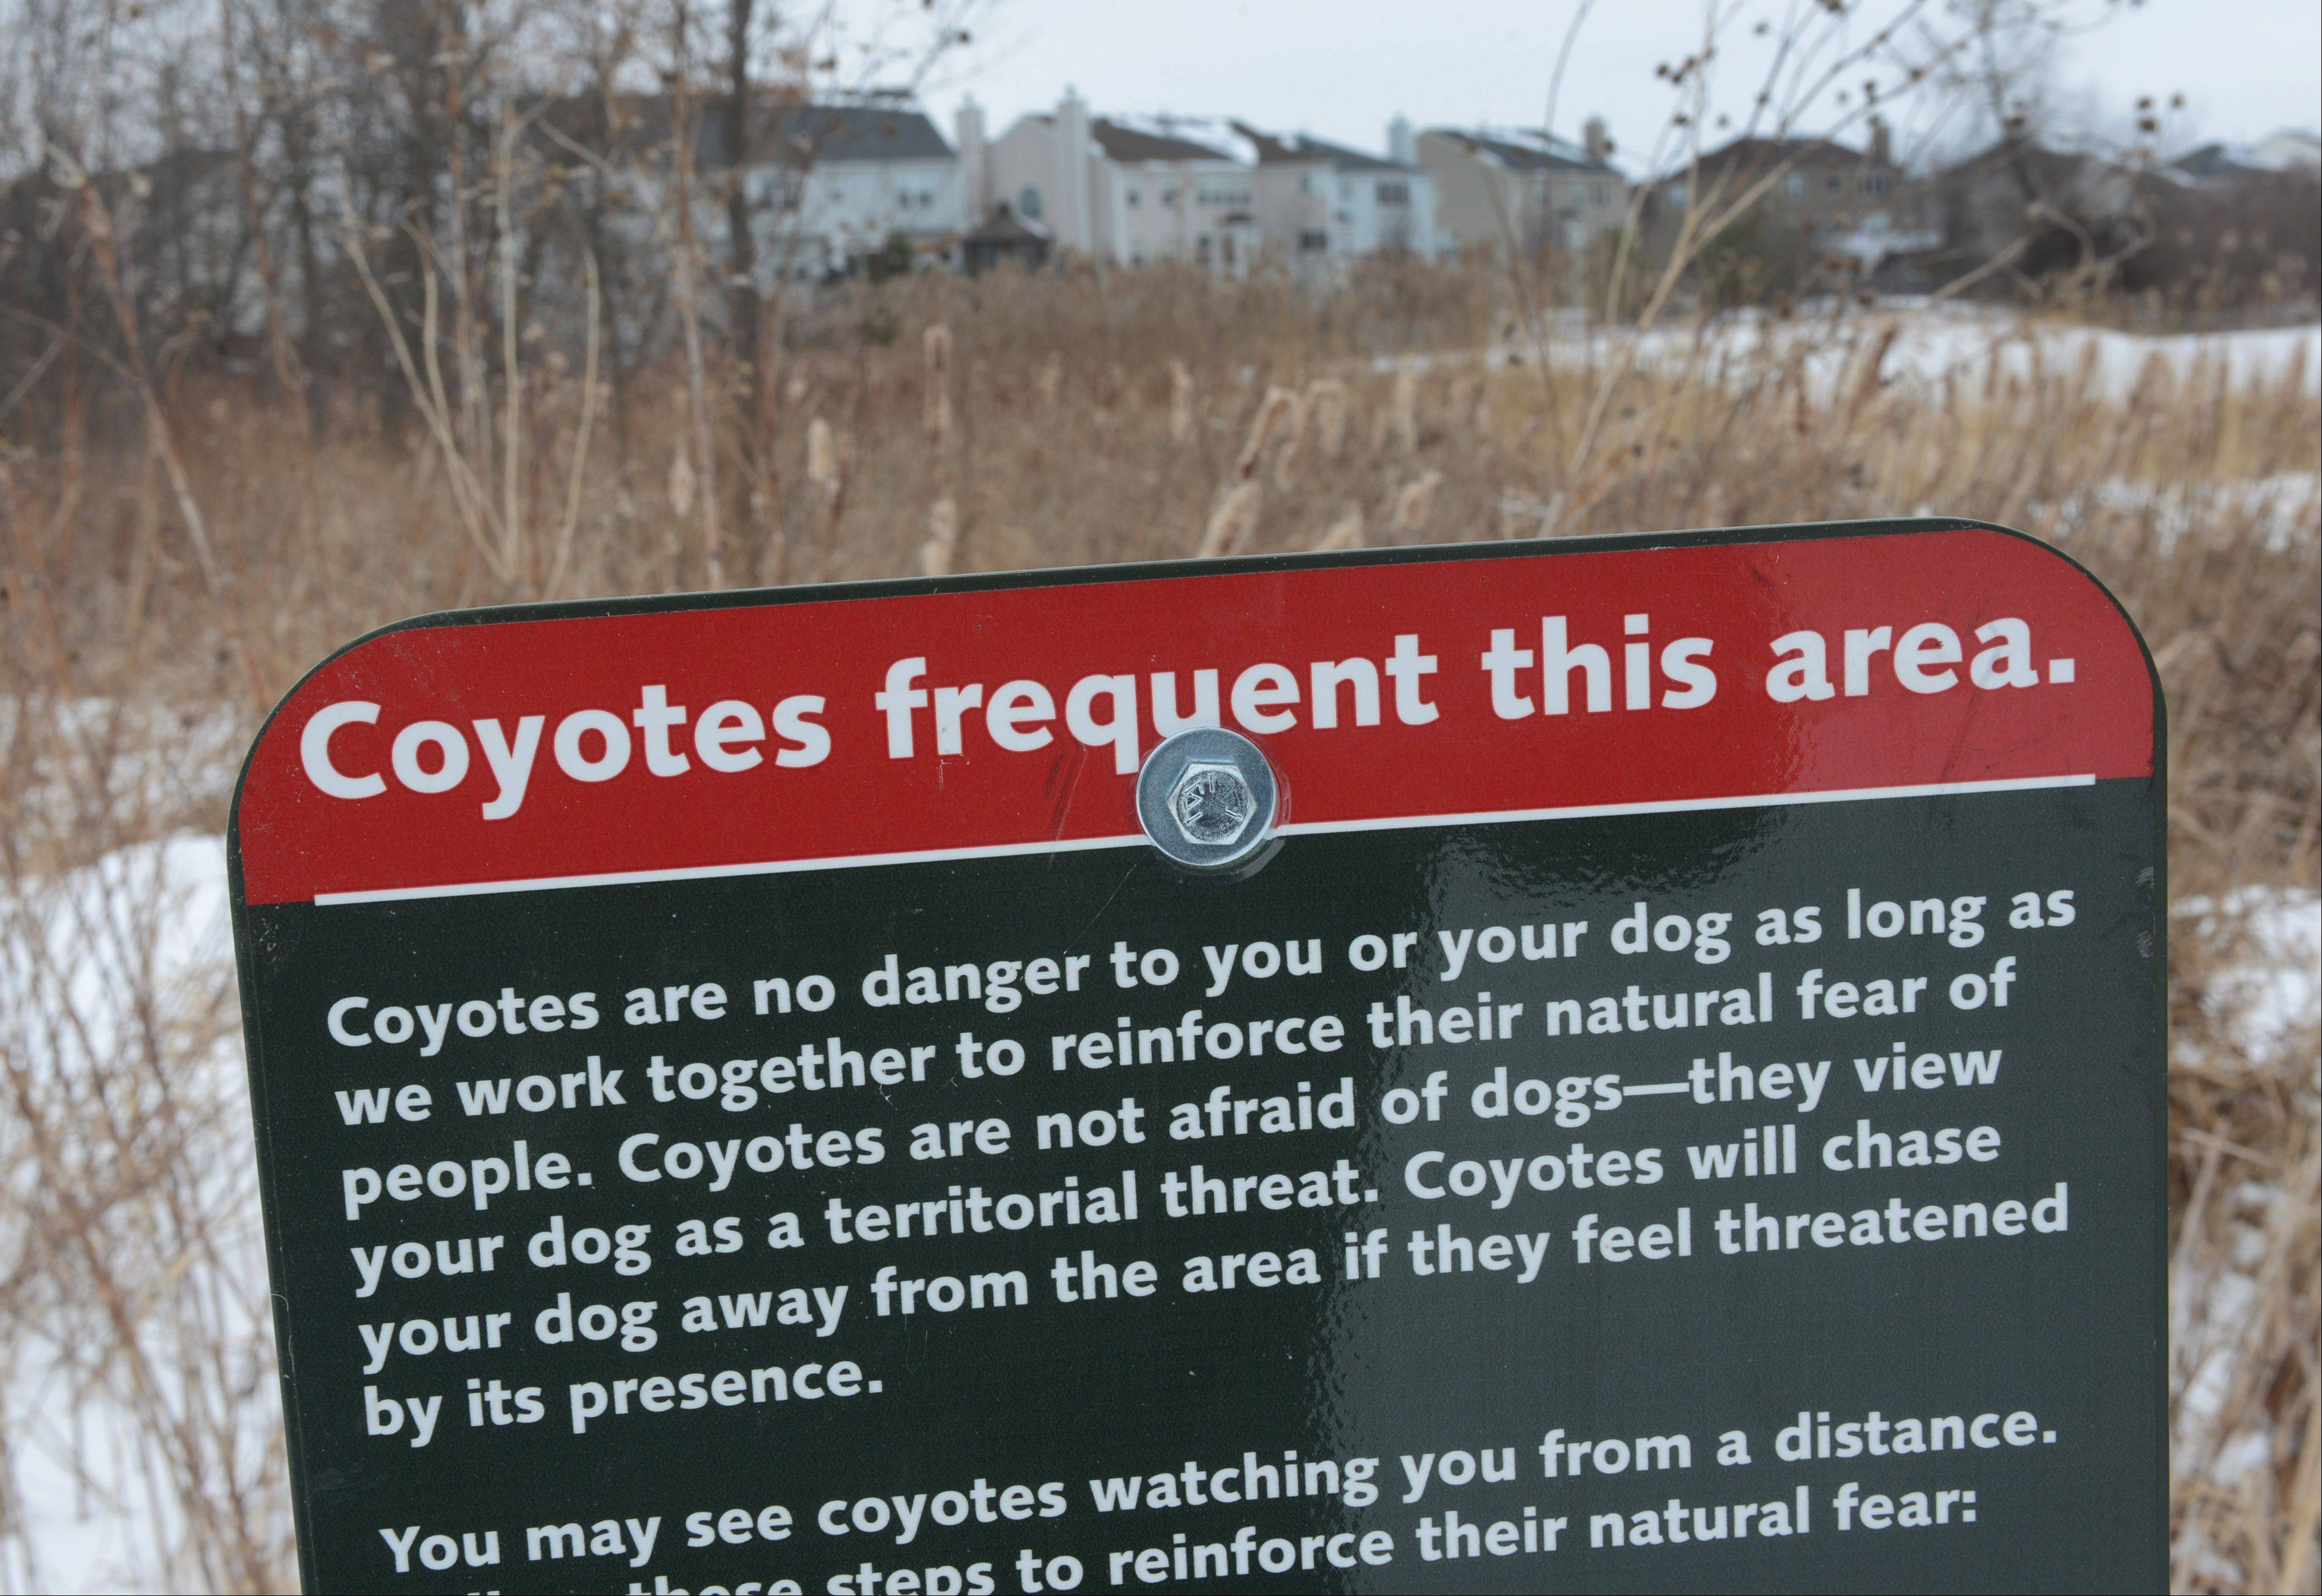 A sign has been posted at the Millennium Trail entrance along Gossell Road near Wauconda alerting people about coyote activity in the area of the Orchard Hills subdivision.